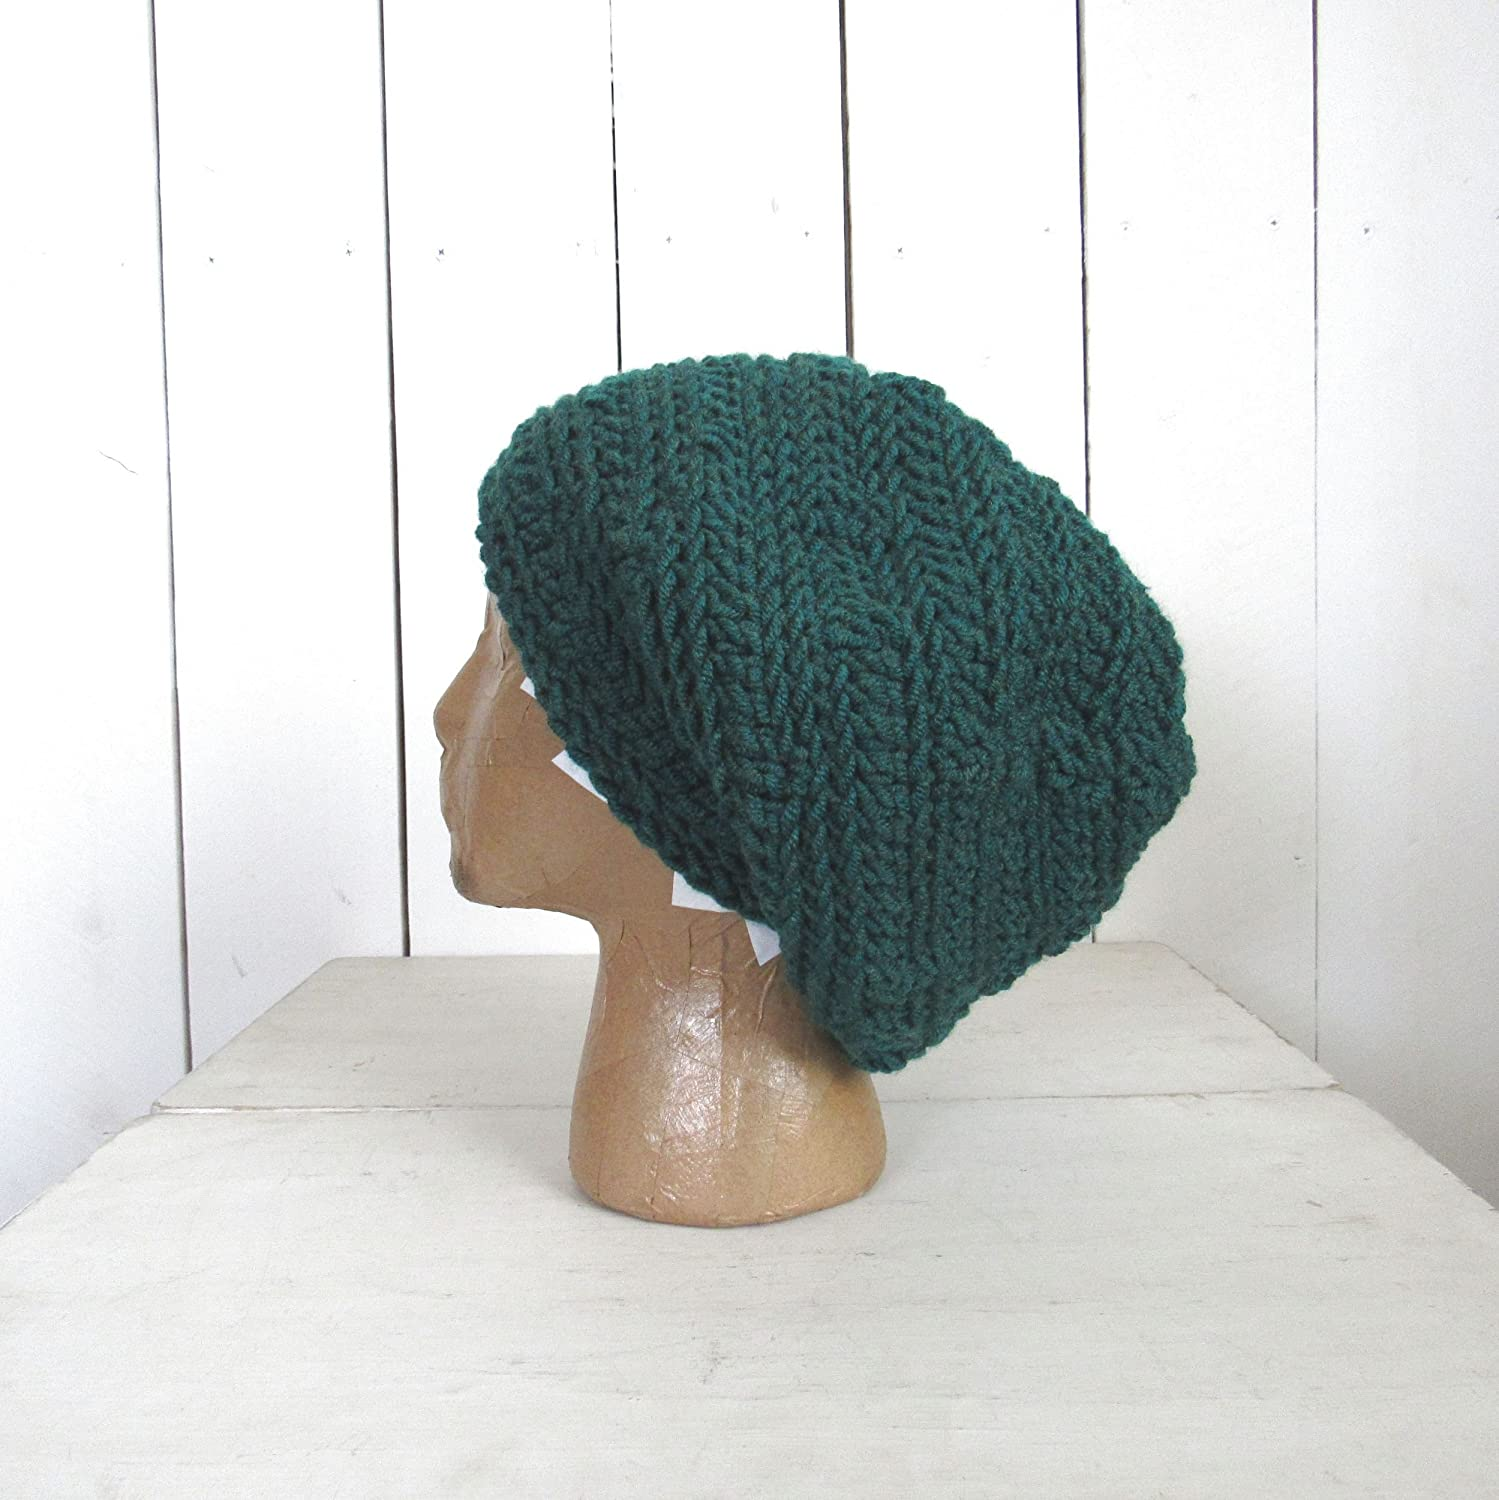 Hand Crochet Peacock Slouchy Snood Hat (More Colors Available) - DeluxeAdultCostumes.com